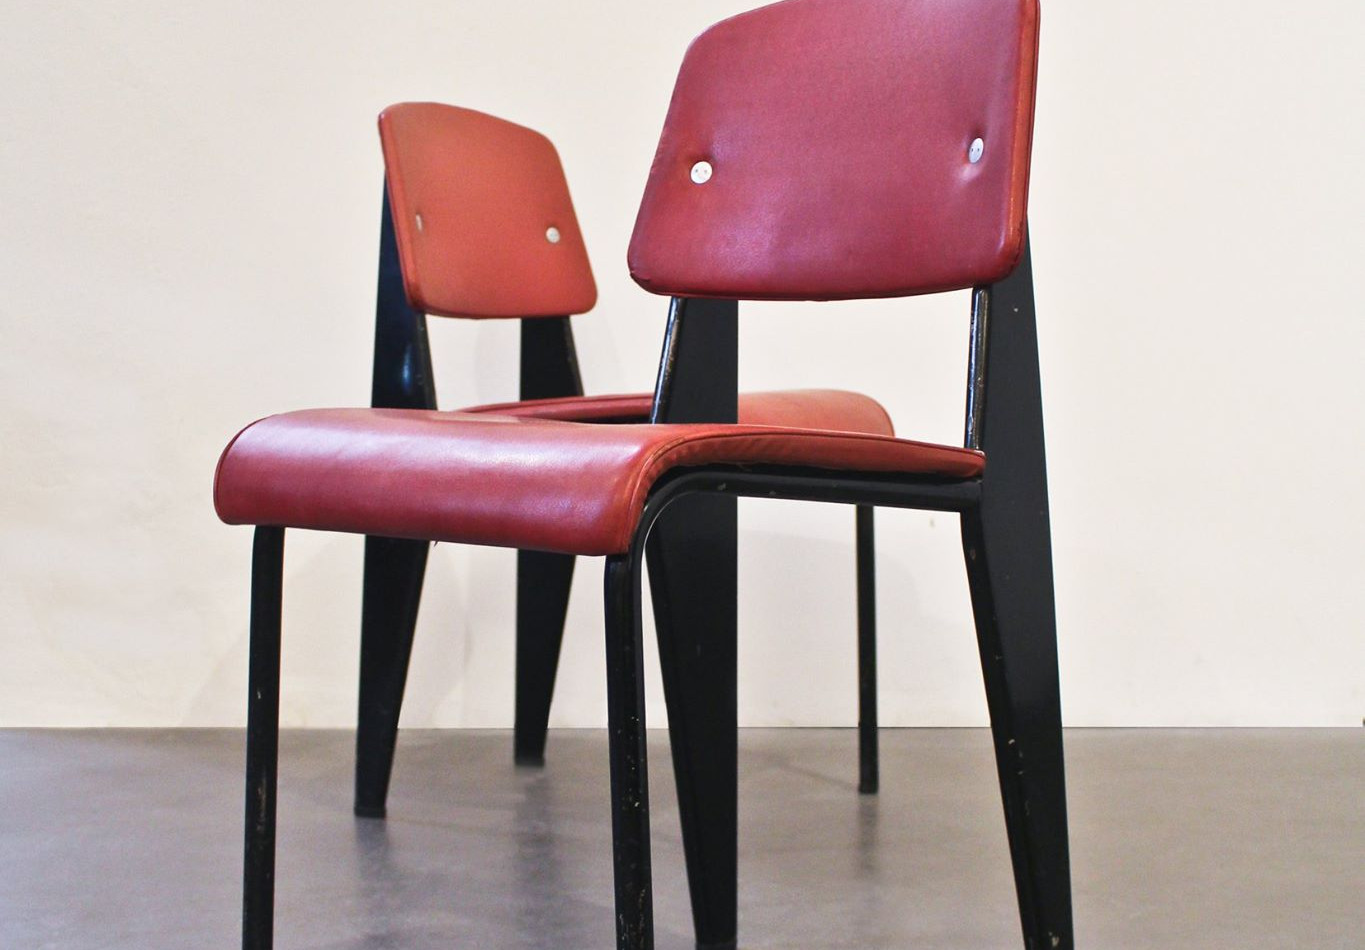 clement_cividino_jean_prouve_chairs.jpg